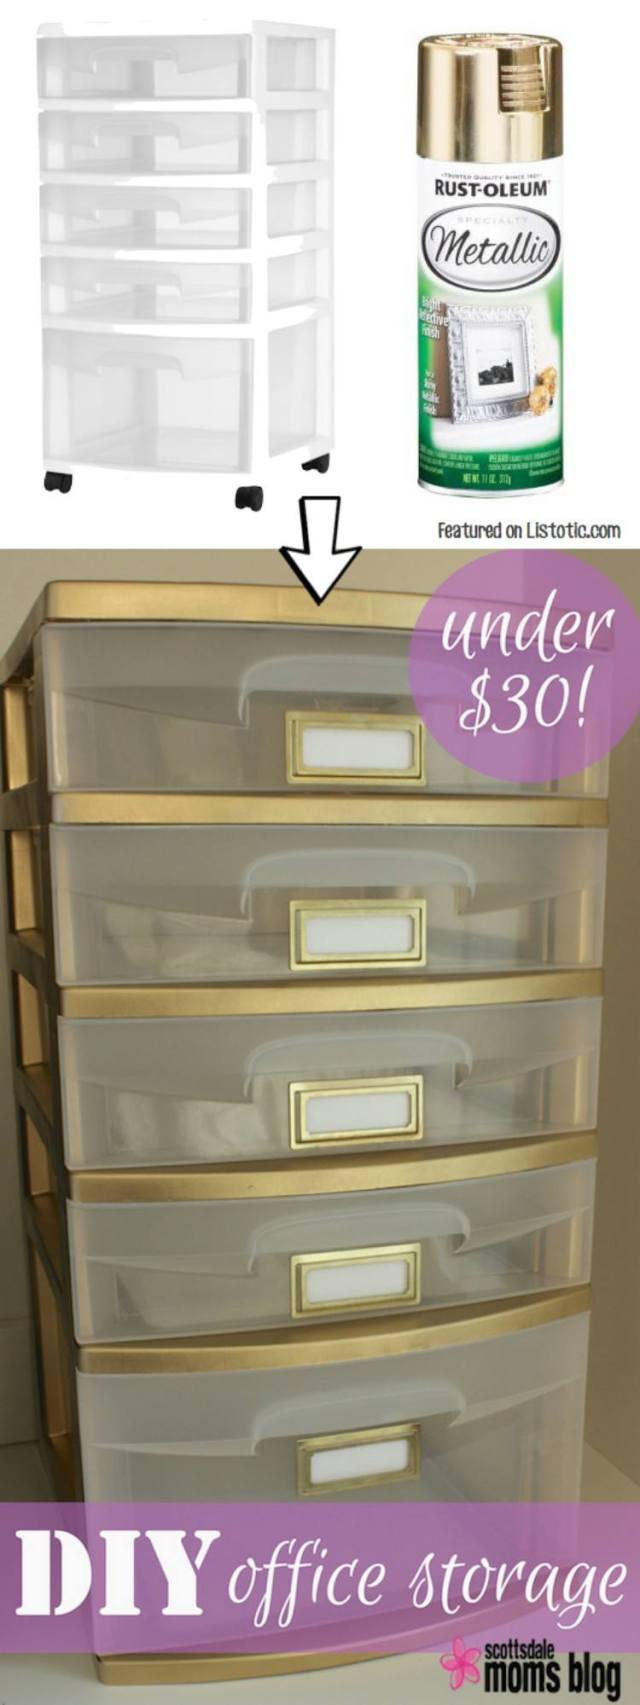 Spray Paint Drawers